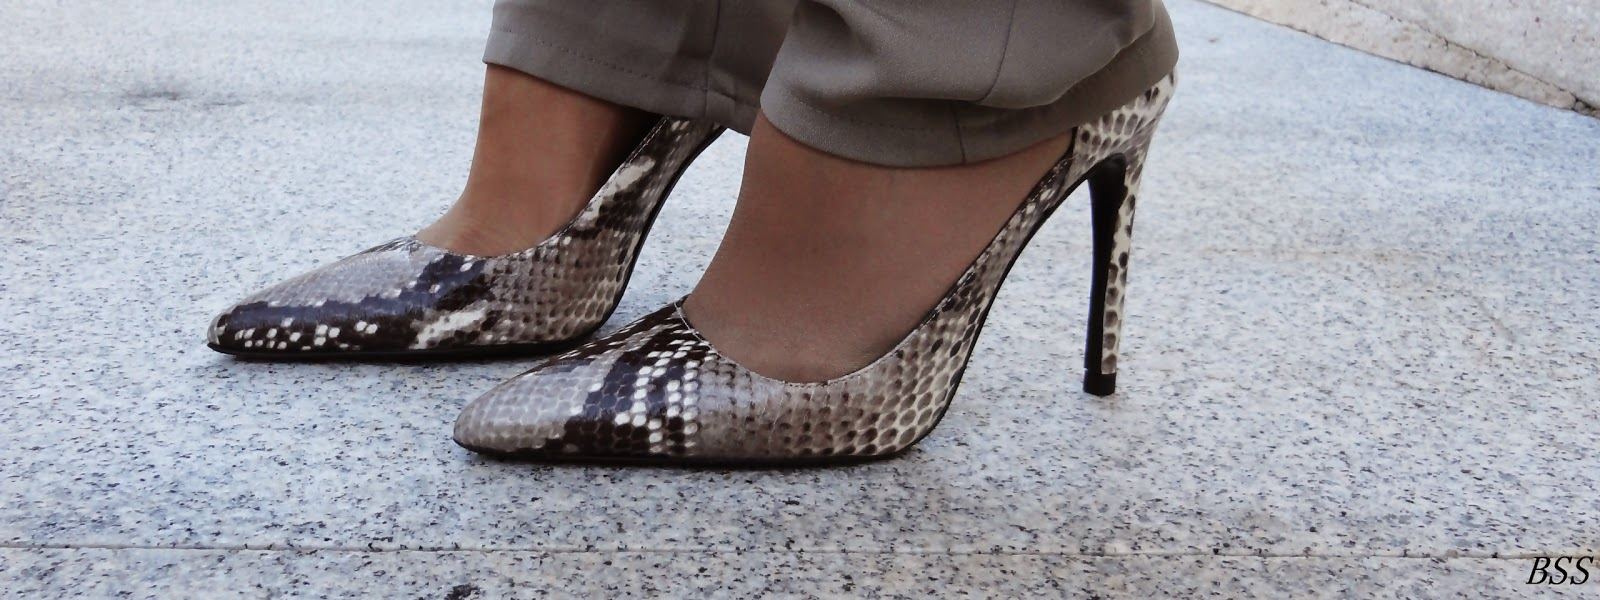 SHOE KING : STILETTO